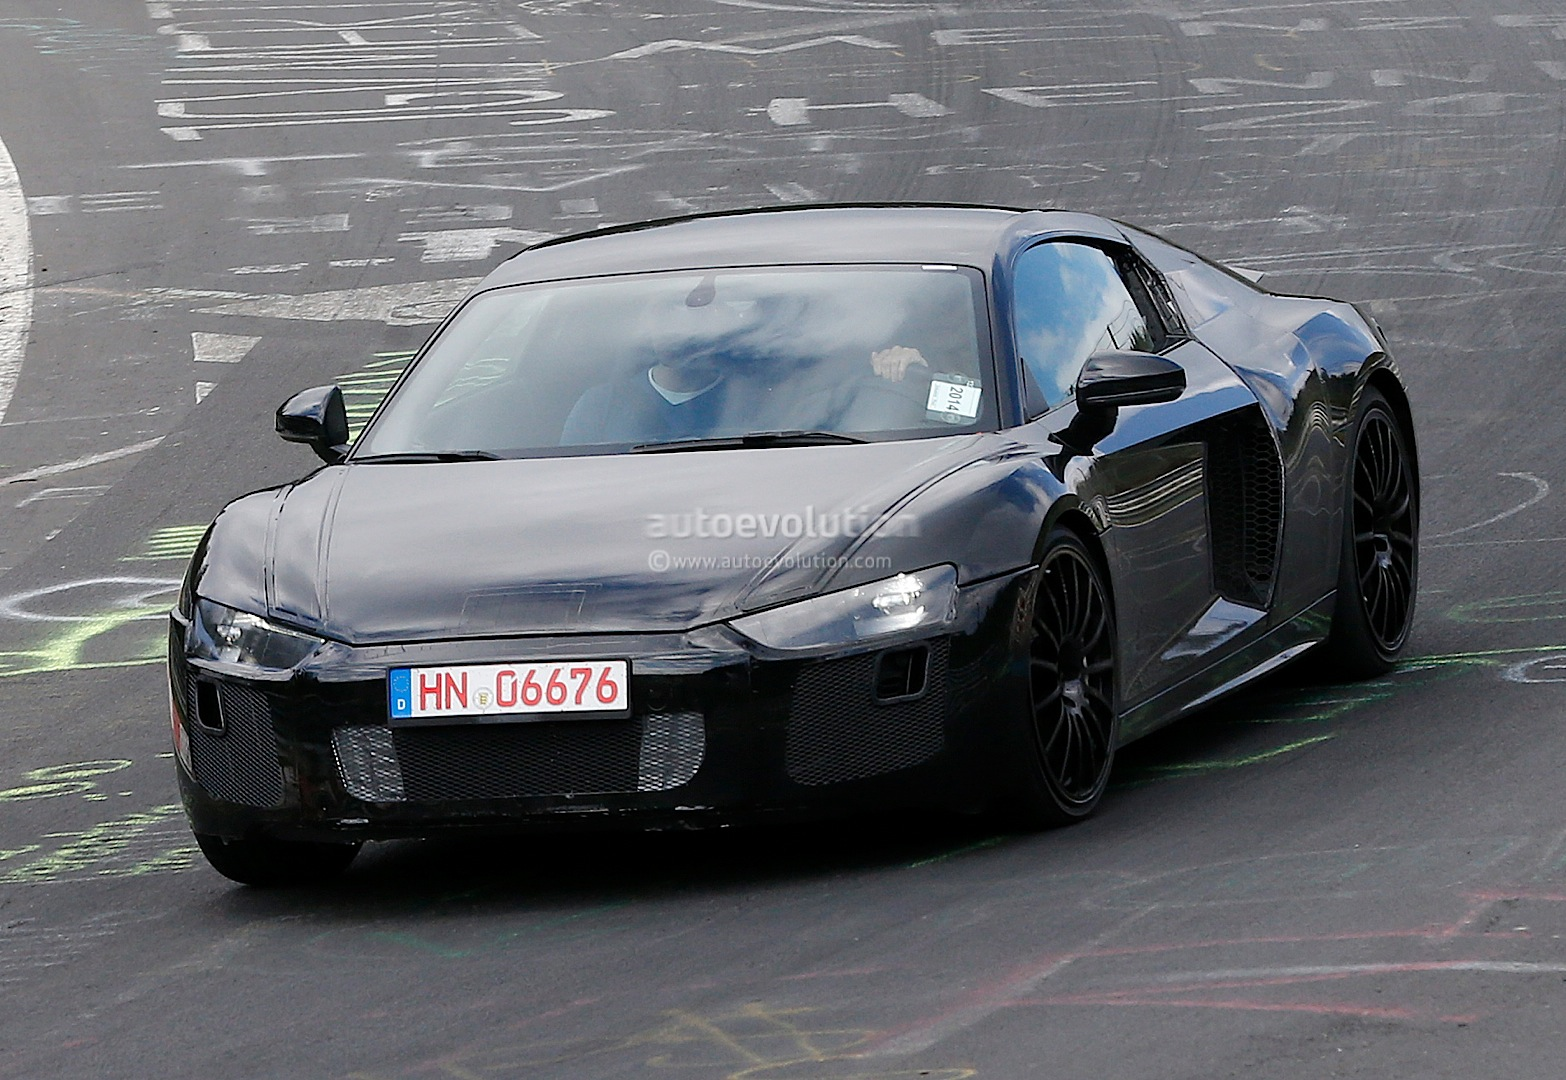 2015 - [Audi] R8 II / R8 II Spider All-new-audi-r8-loses-its-camo-during-latest-nurburgring-tests-photo-gallery_2